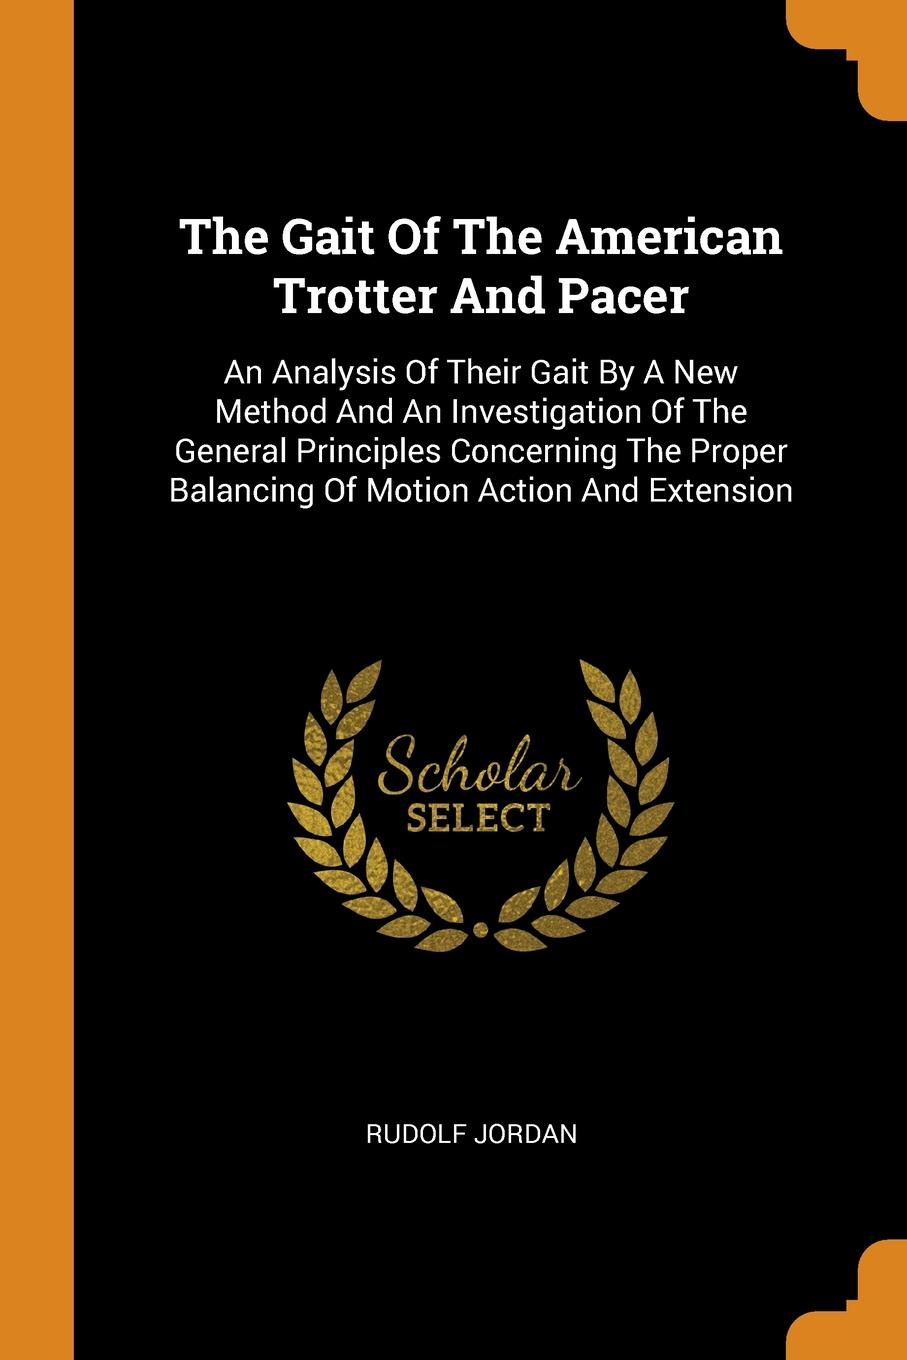 Rudolf Jordan The Gait Of The American Trotter And Pacer. An Analysis Of Their Gait By A New Method And An Investigation Of The General Principles Concerning The Proper Balancing Of Motion Action And Extension biomechanics of steppage gait